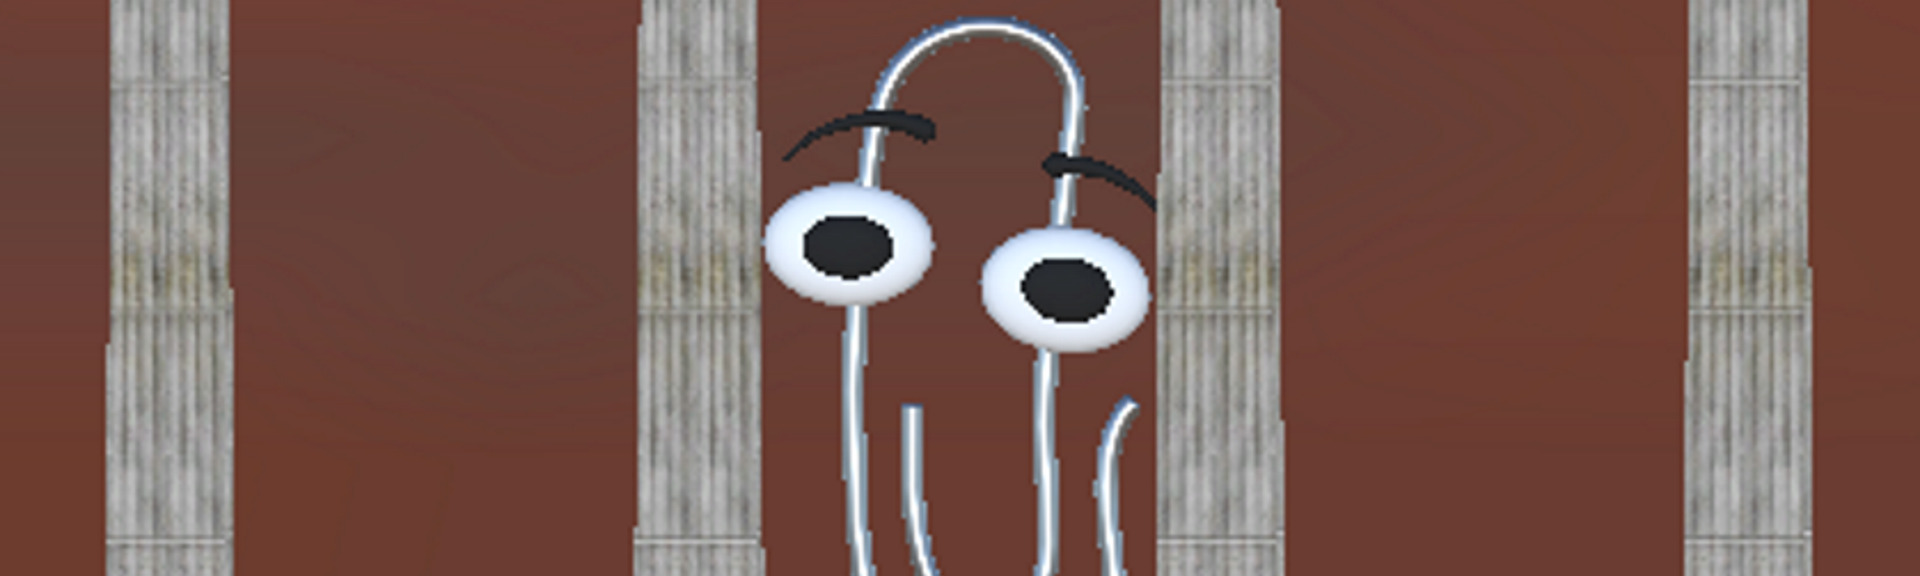 Clippy pano2